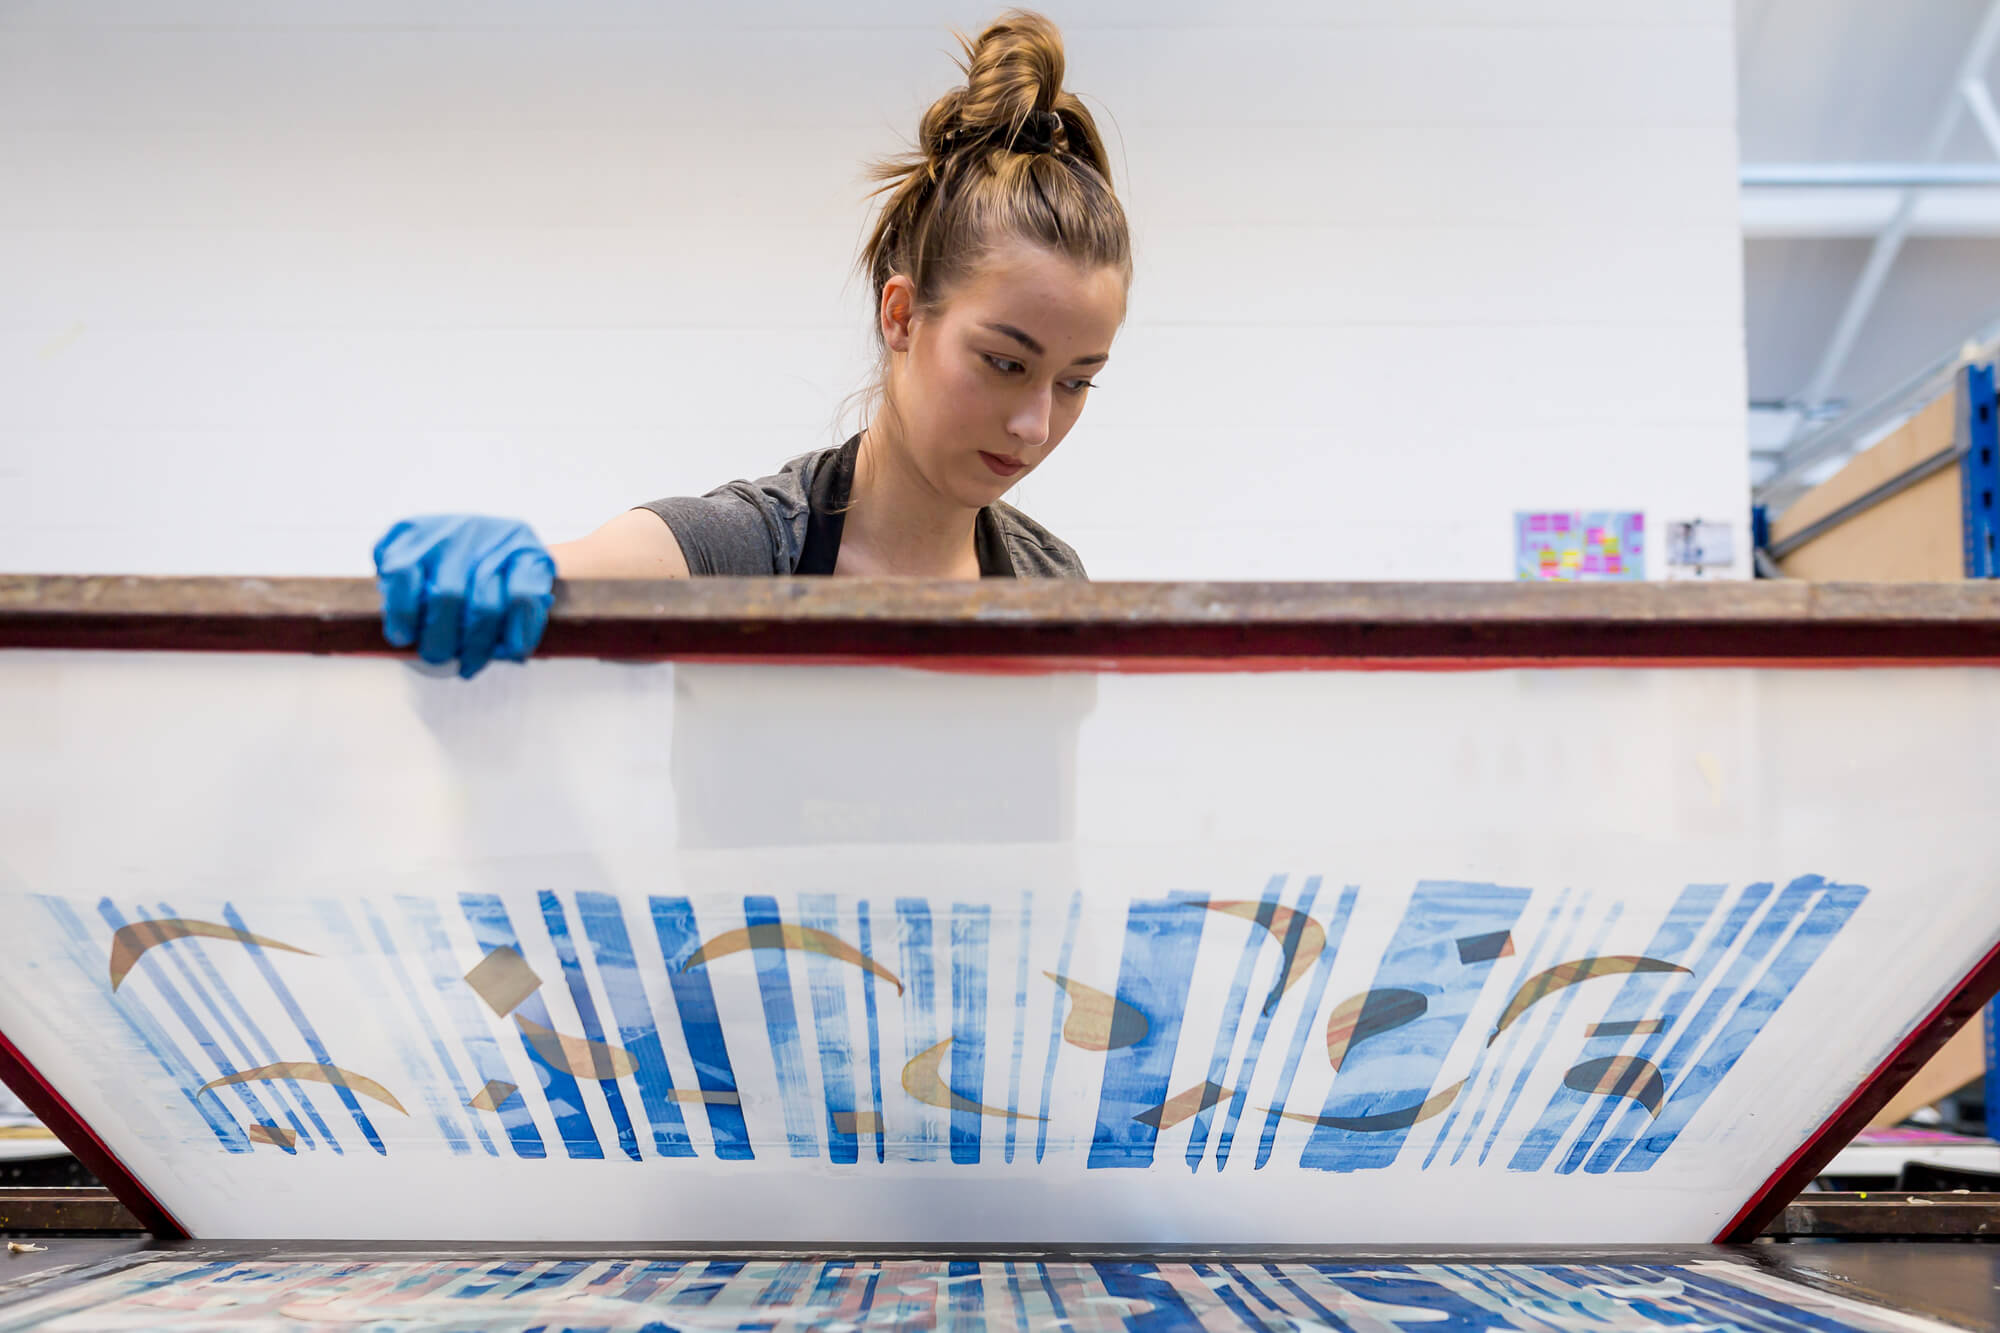 A female screenprints a picture with blue vertical lines and abstract shapes